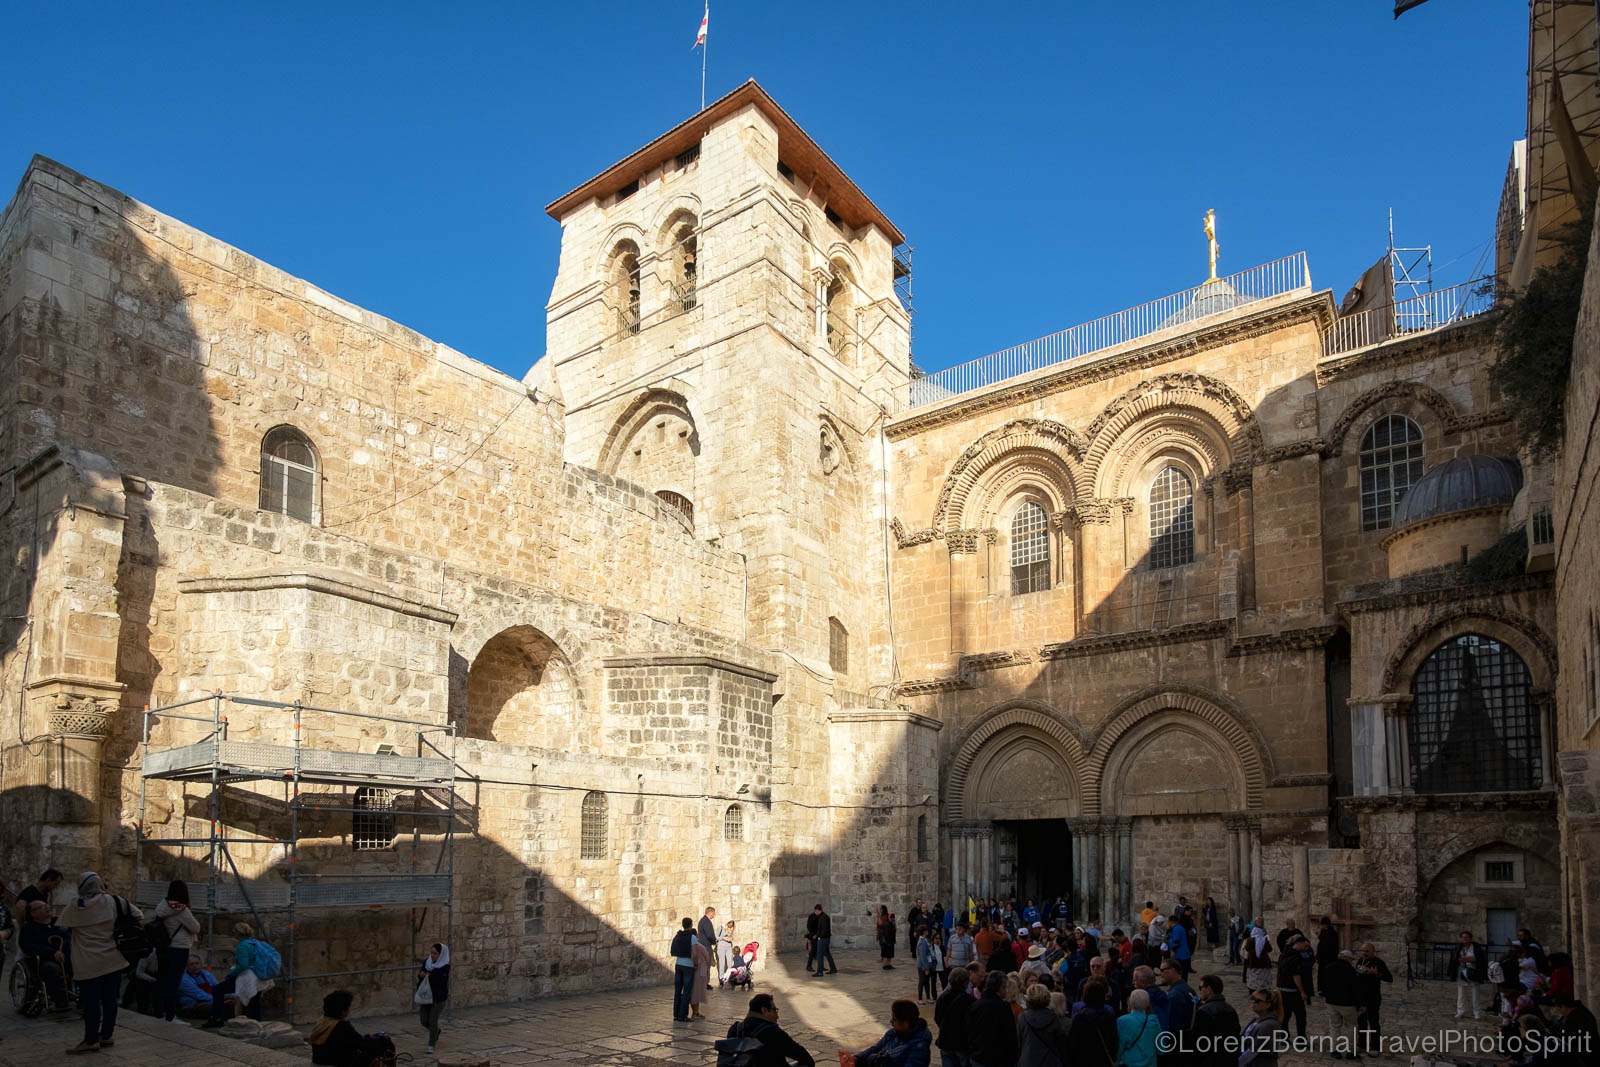 The front part of the Holy Sepulcher in Jerusalem, Israel.